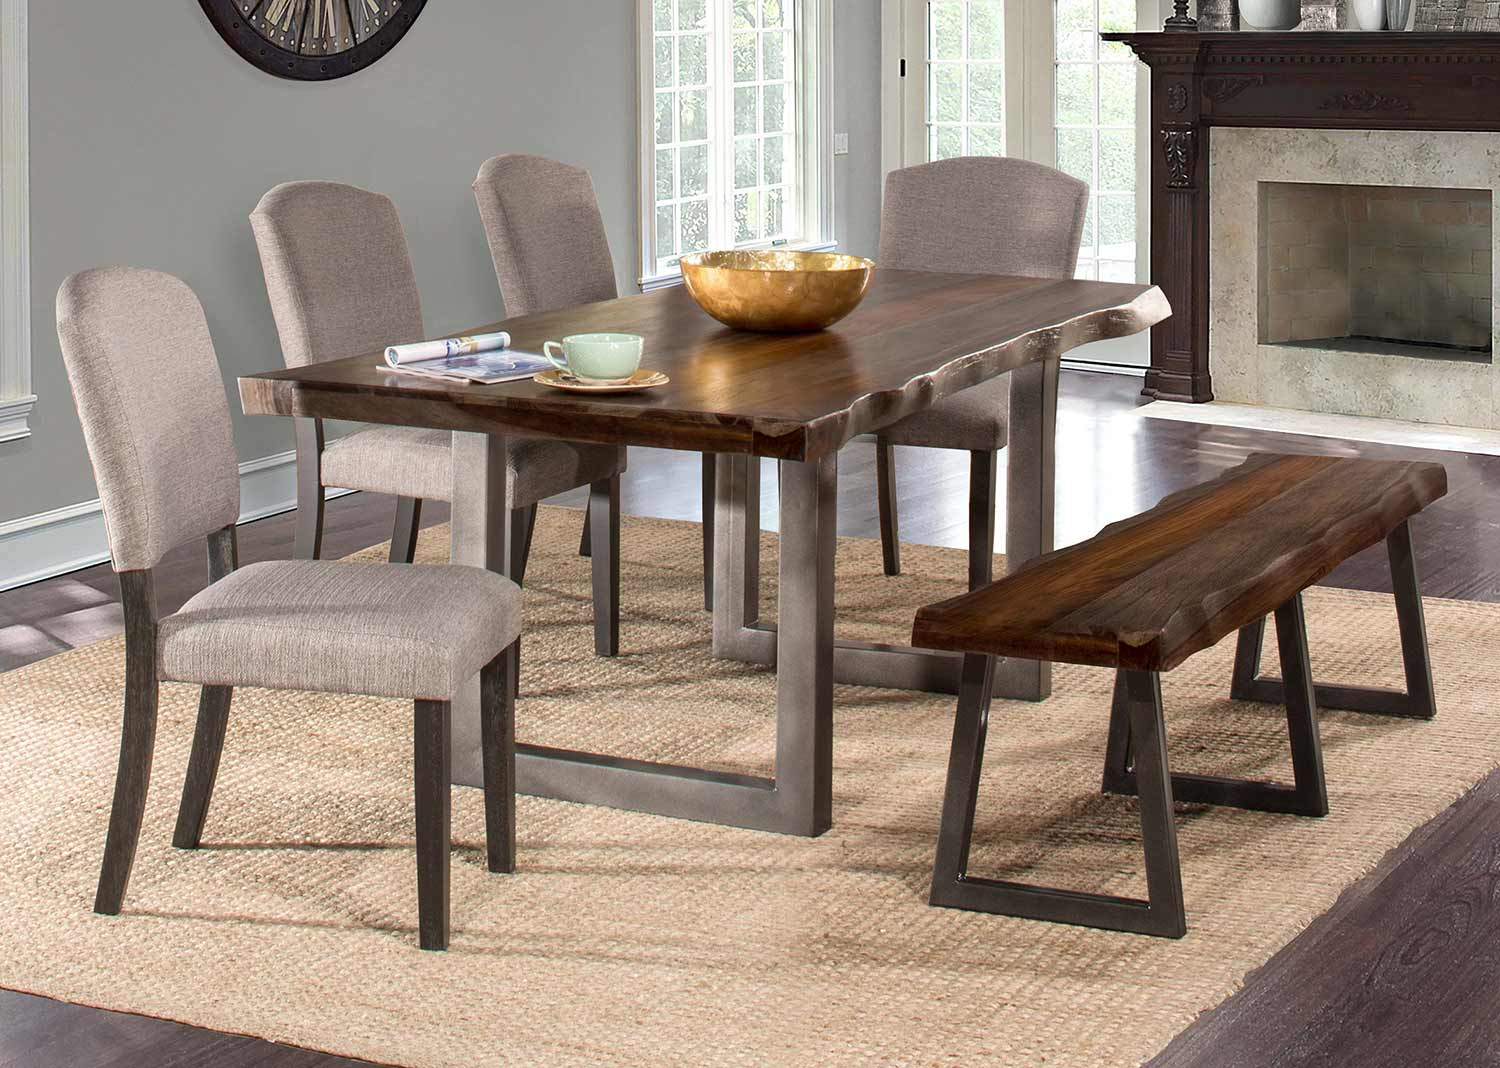 Hillsdale Emerson 6 Piece Rectangle Dining Set With One Bench And Four  Chairs   Gray